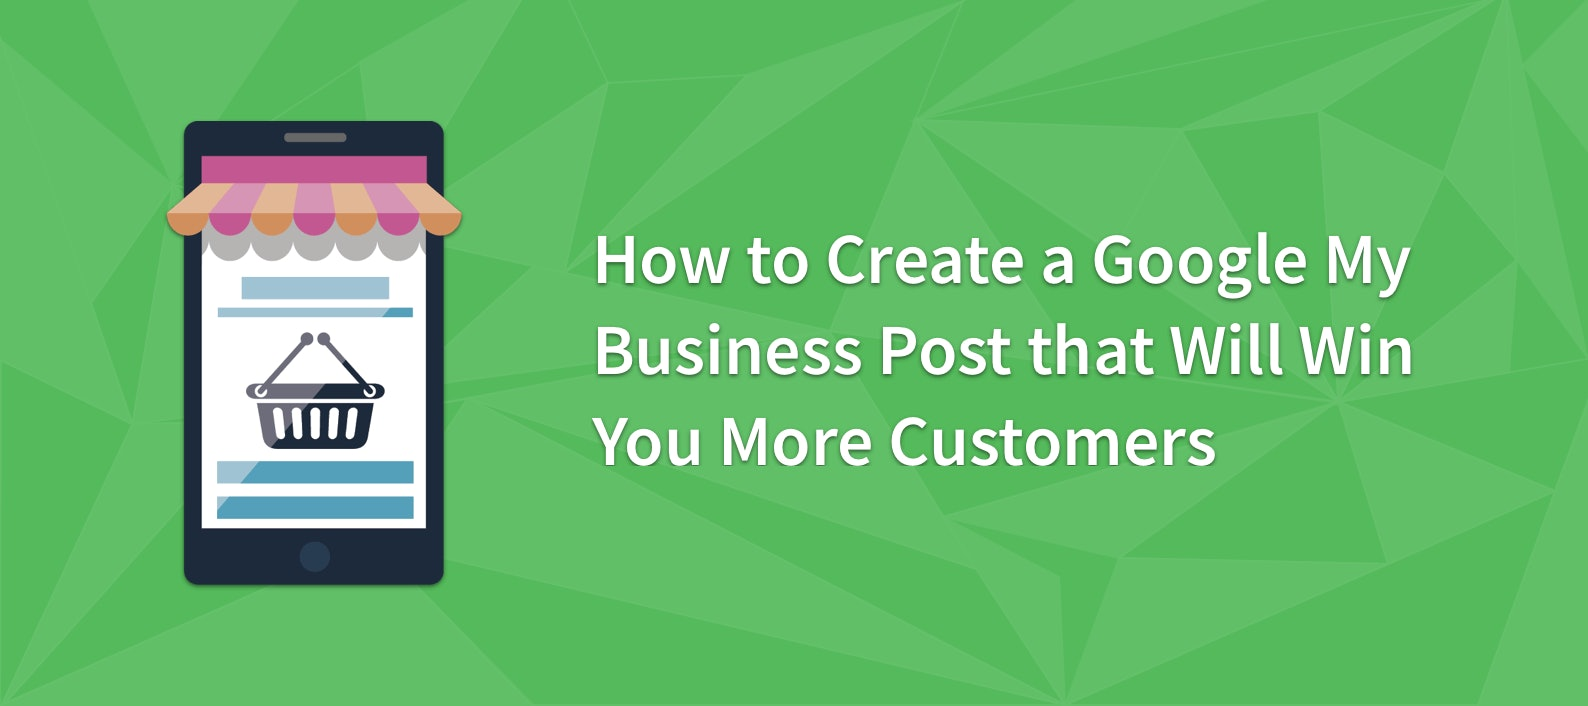 How to Create a Google My Business Post That Will Win You More